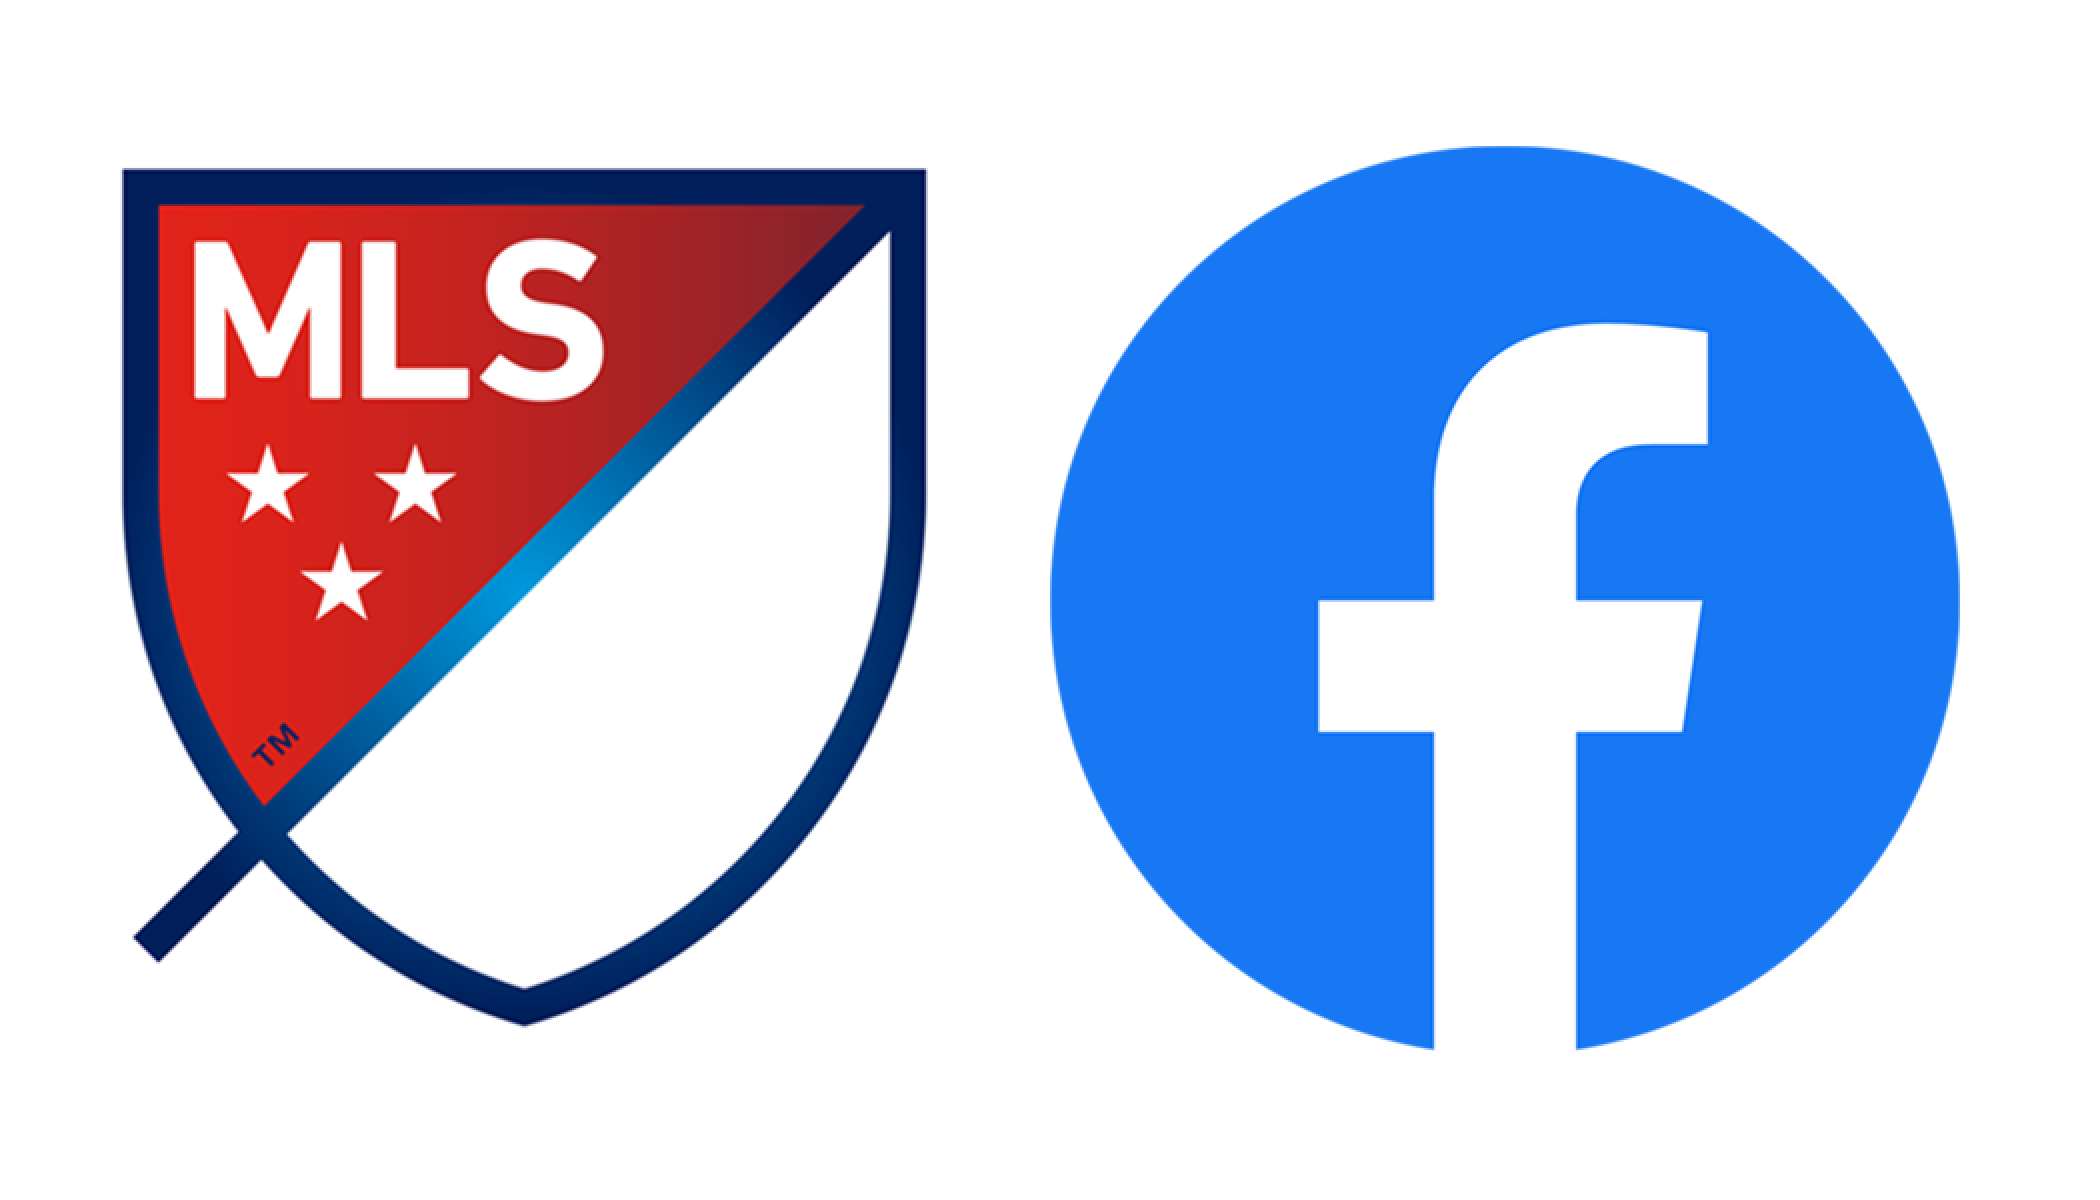 Major League Soccer And Facebook Partner To Bring Game Recaps To Facebook Watch Isportconnect